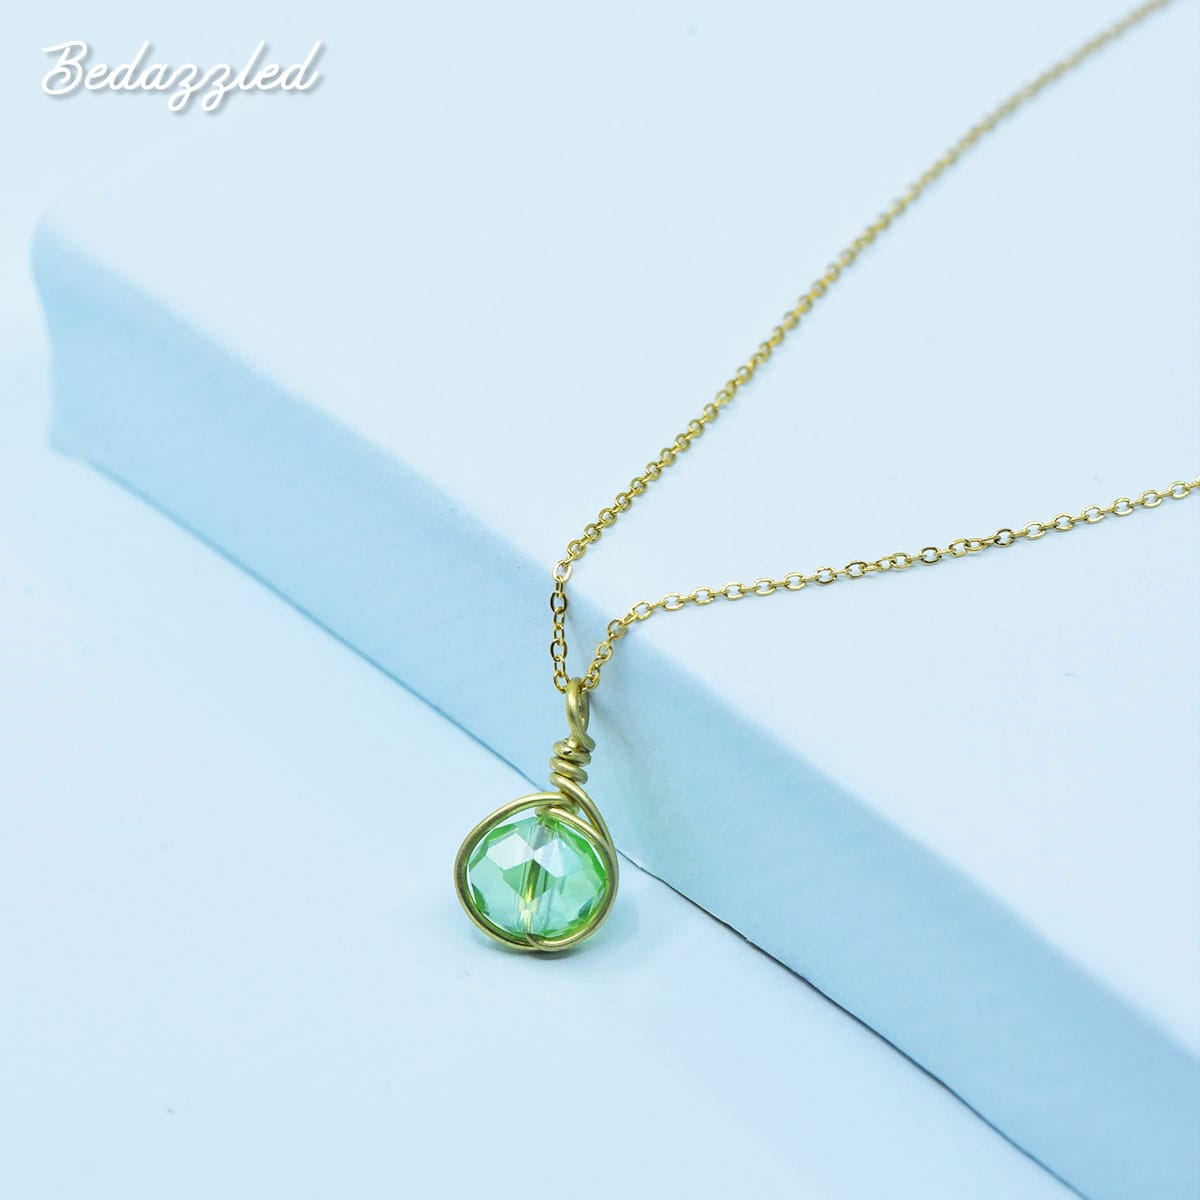 Bedazzling Green - Necklace